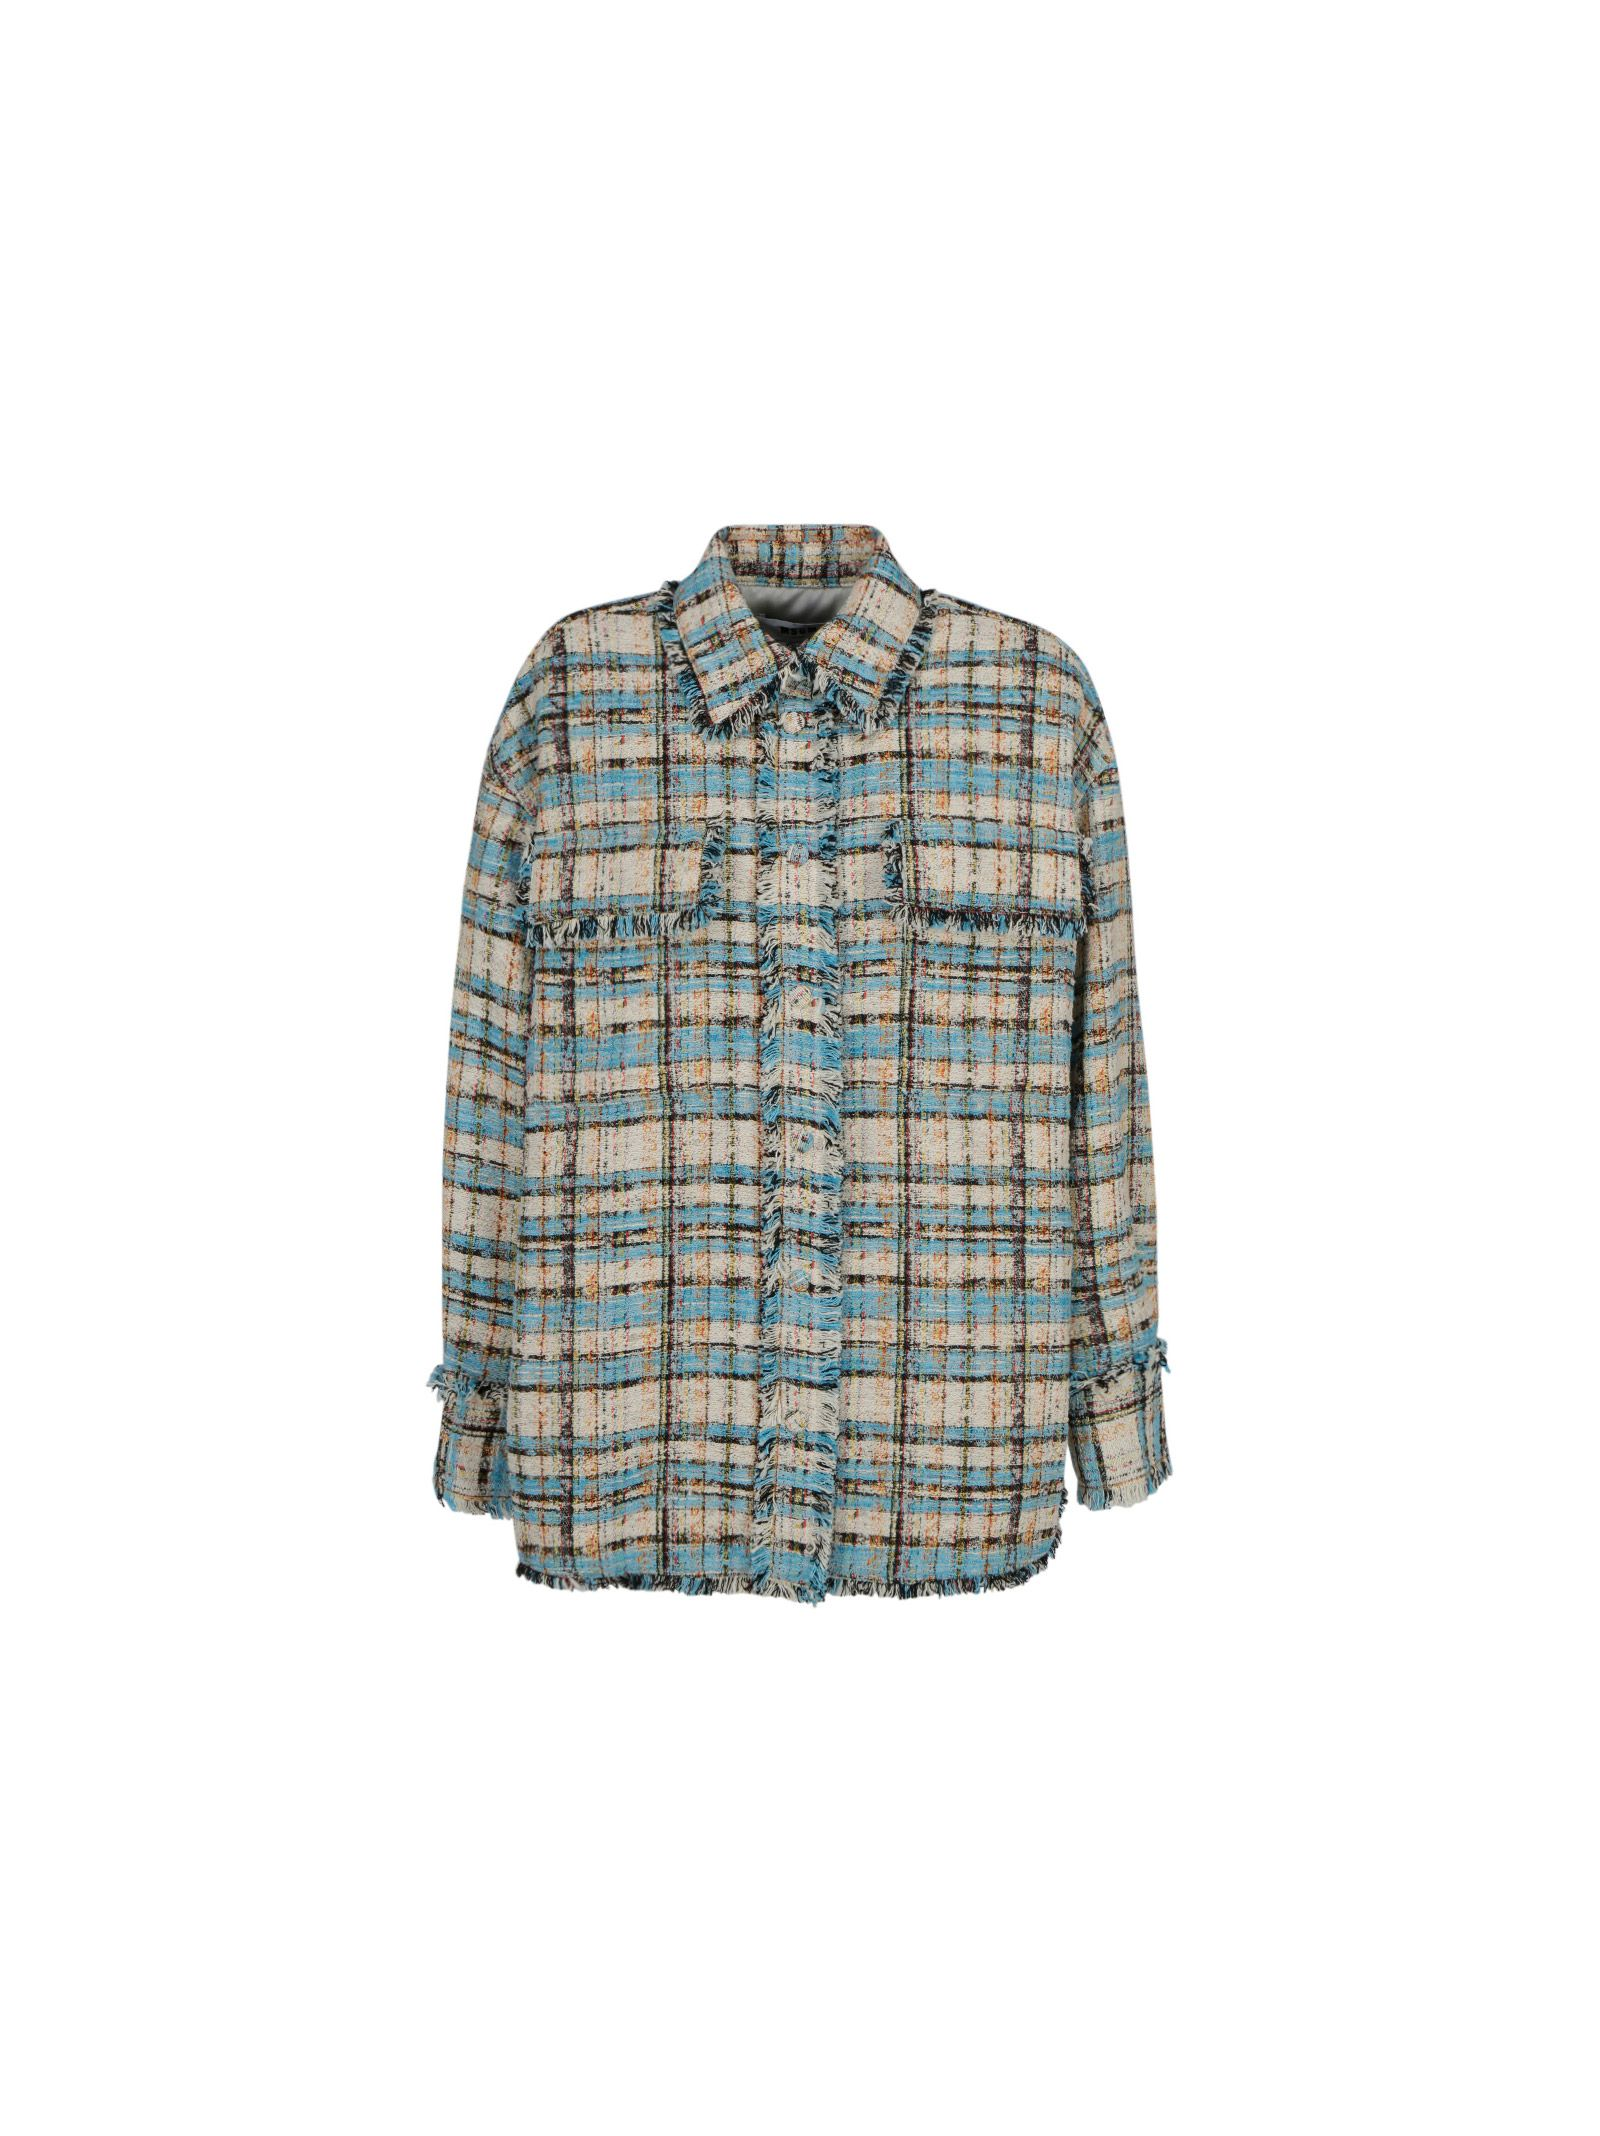 Msgm WOMEN'S 3041MDE1221710282 BLUE OTHER MATERIALS SHIRT